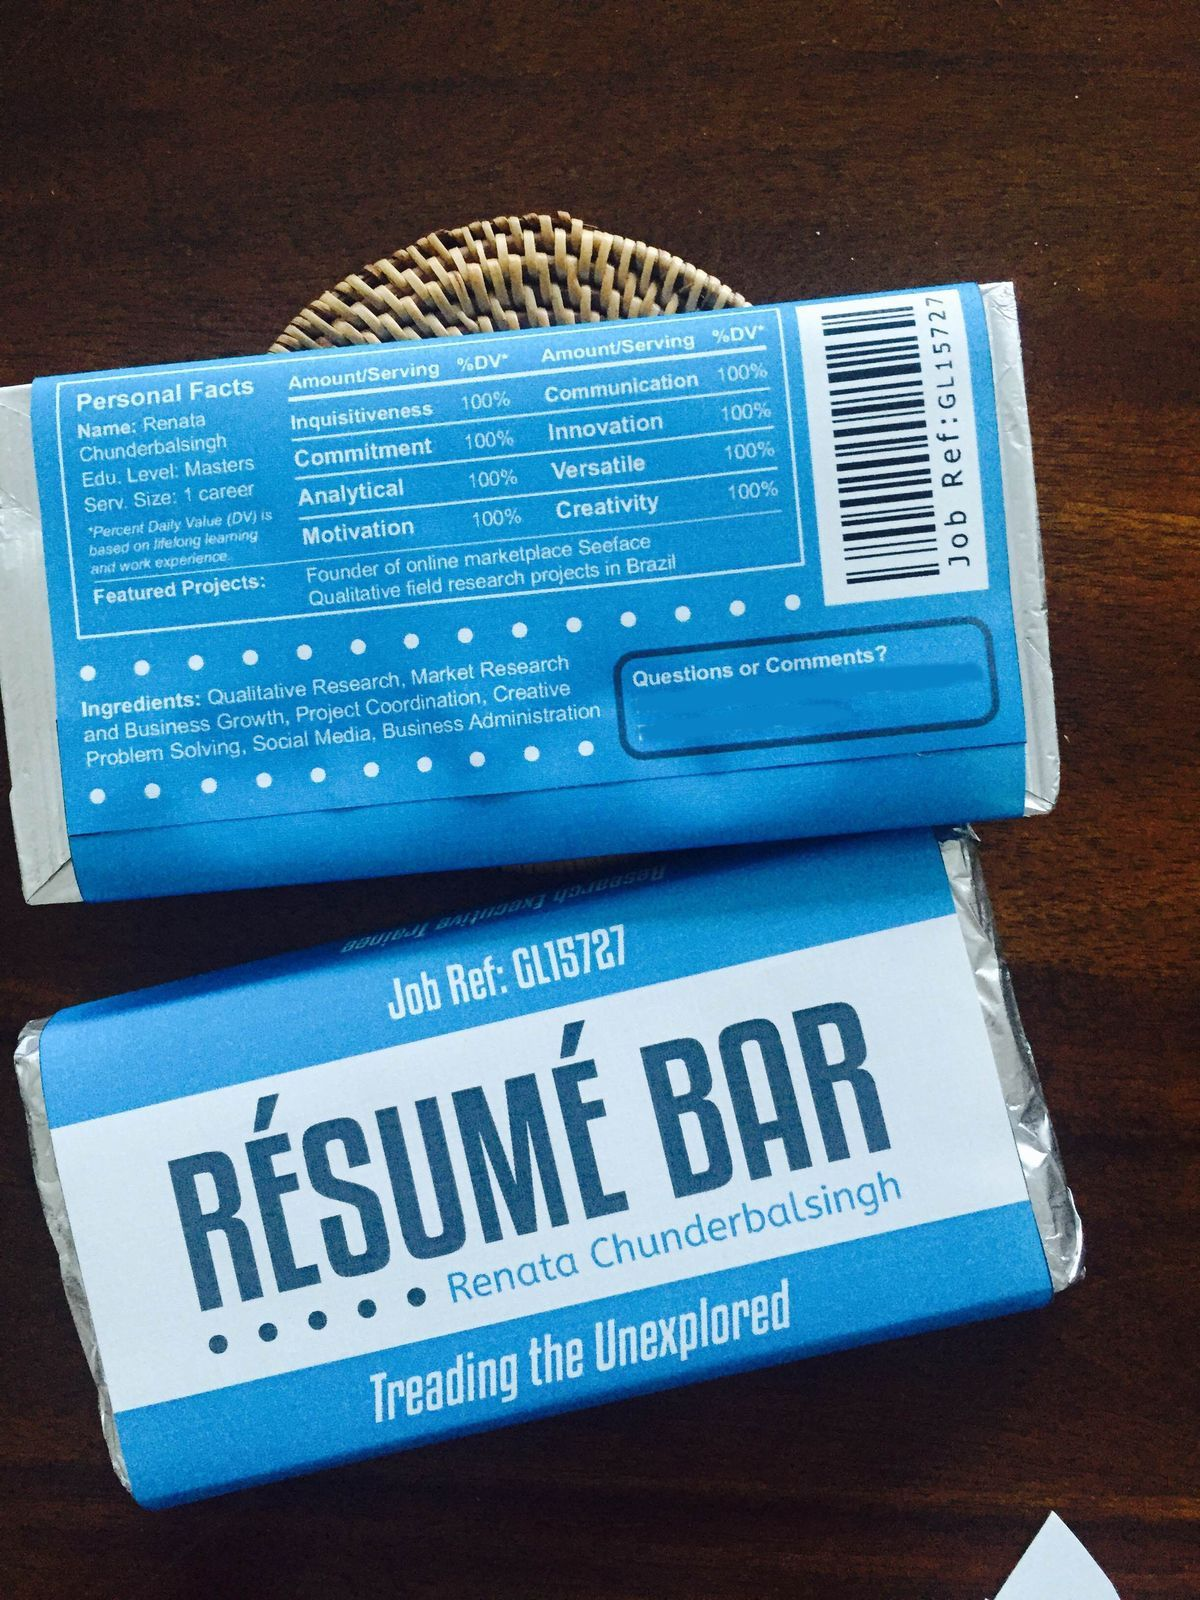 The chocolate bar resum is still a surefire way of getting noticed for promotional folders business cards flash drives and collateral printing visit www colourmoves Image collections